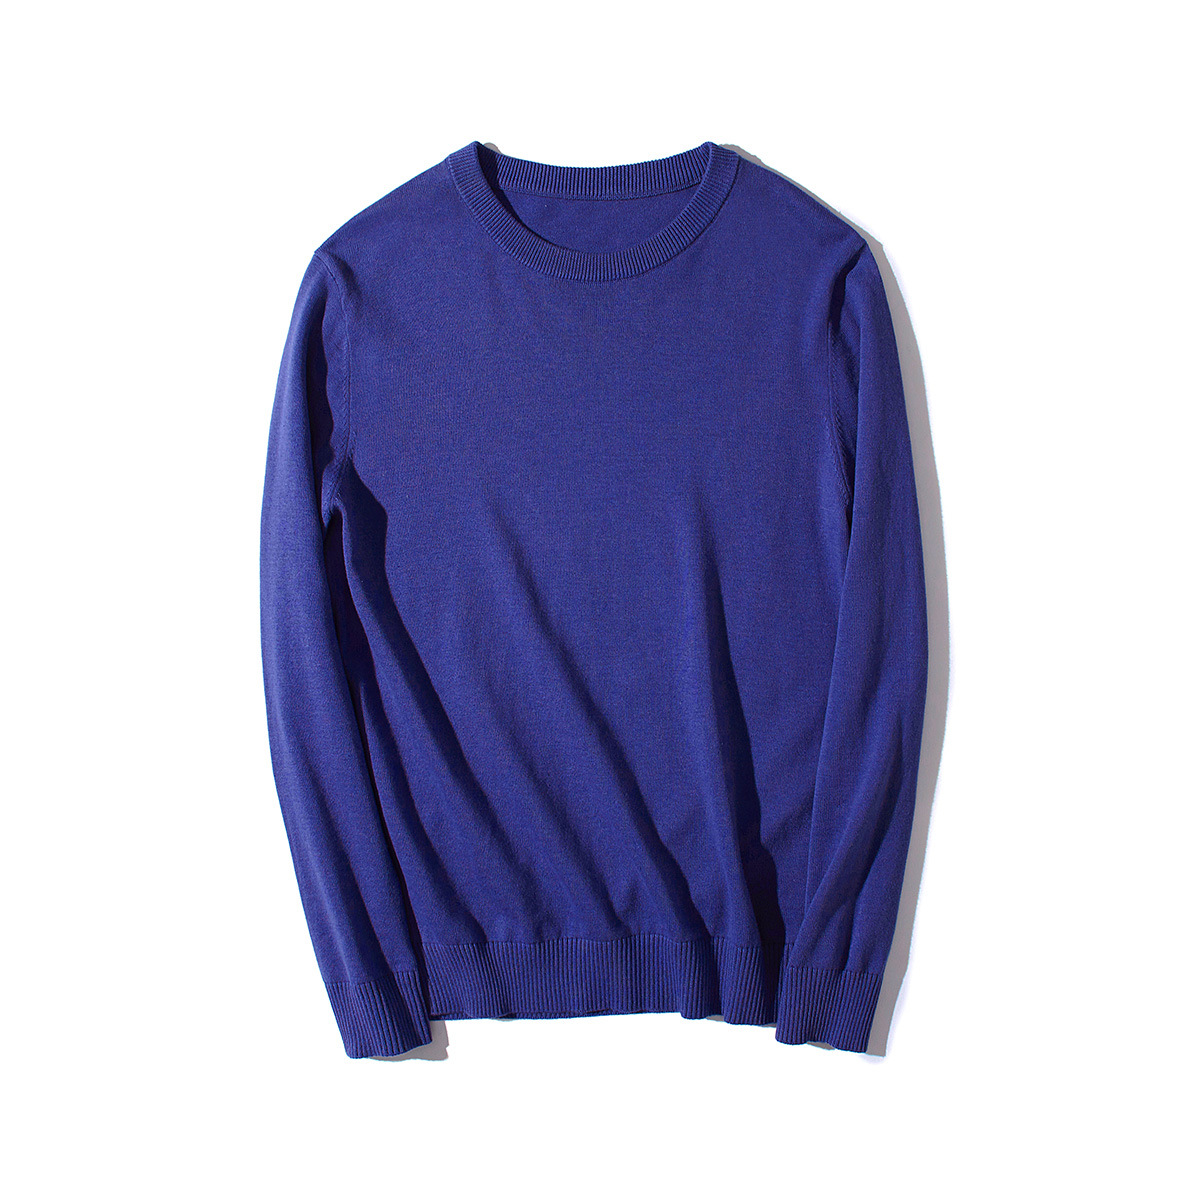 Sweater Men Long-Sleeve Pullover Knitwear Oversized Male Autumn Casual Fashion Blue 3xl